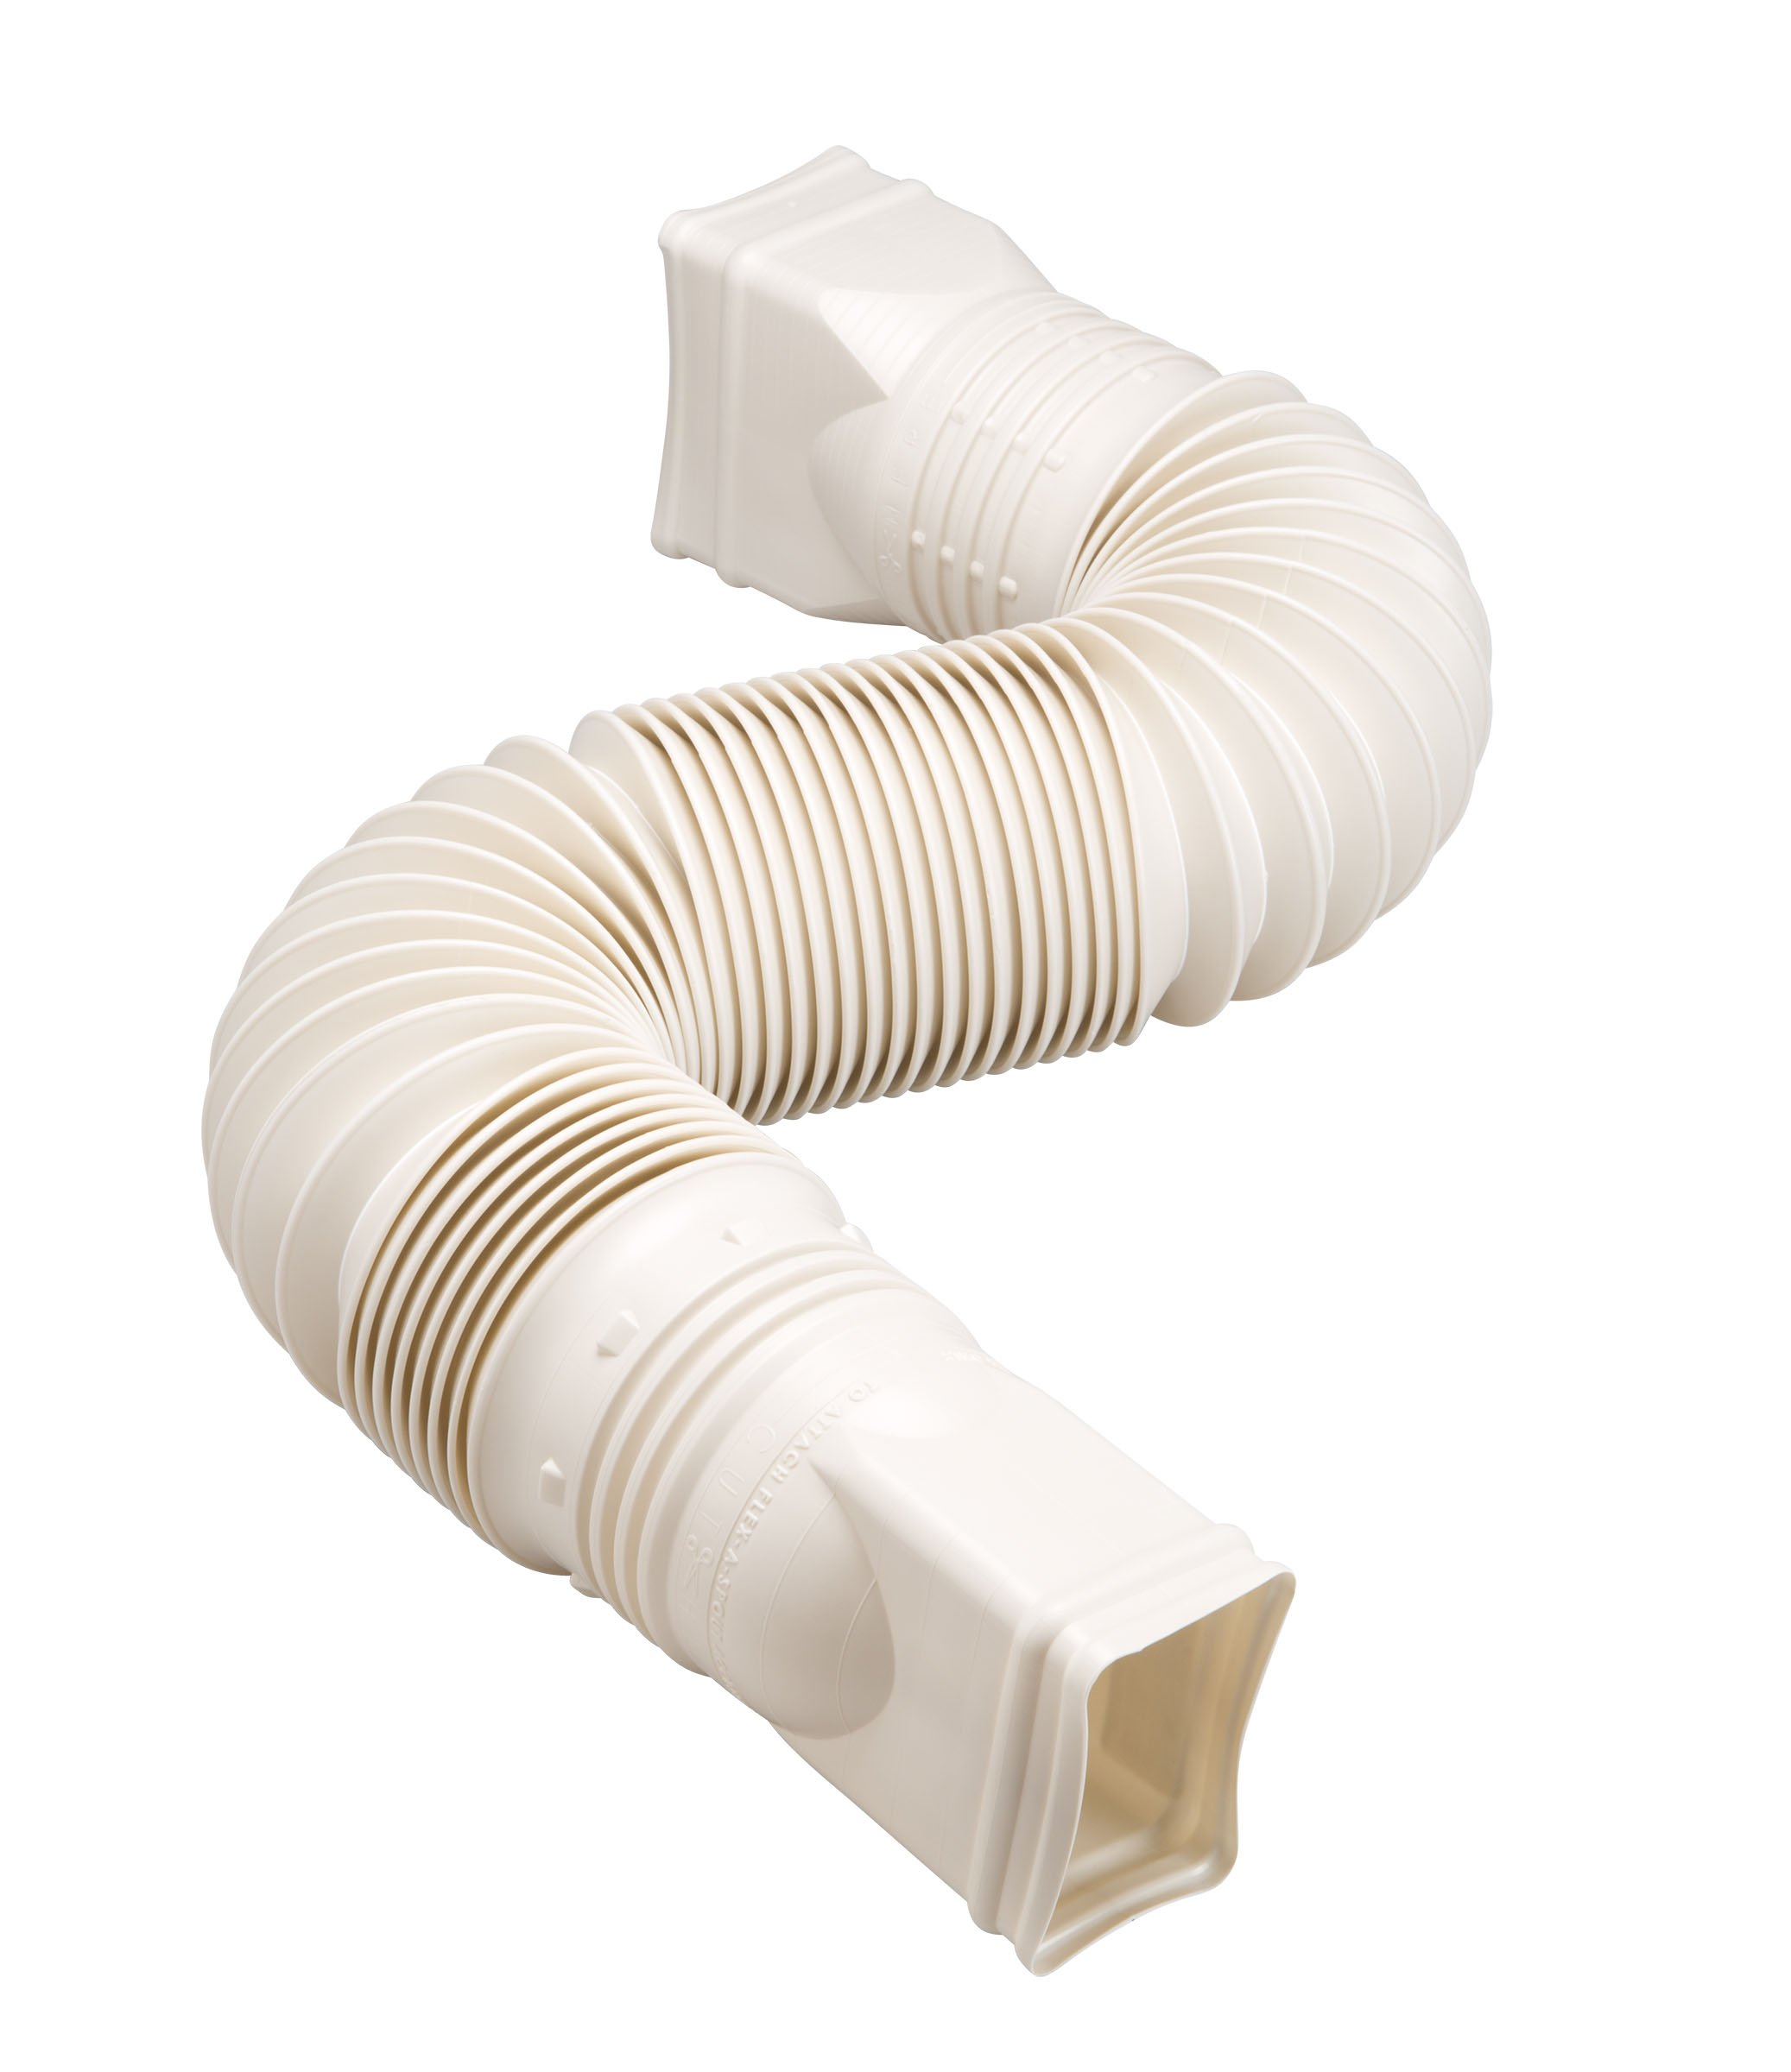 Amerimax Home Products 85014 Flex-a-spout Tan by Flex-Drain